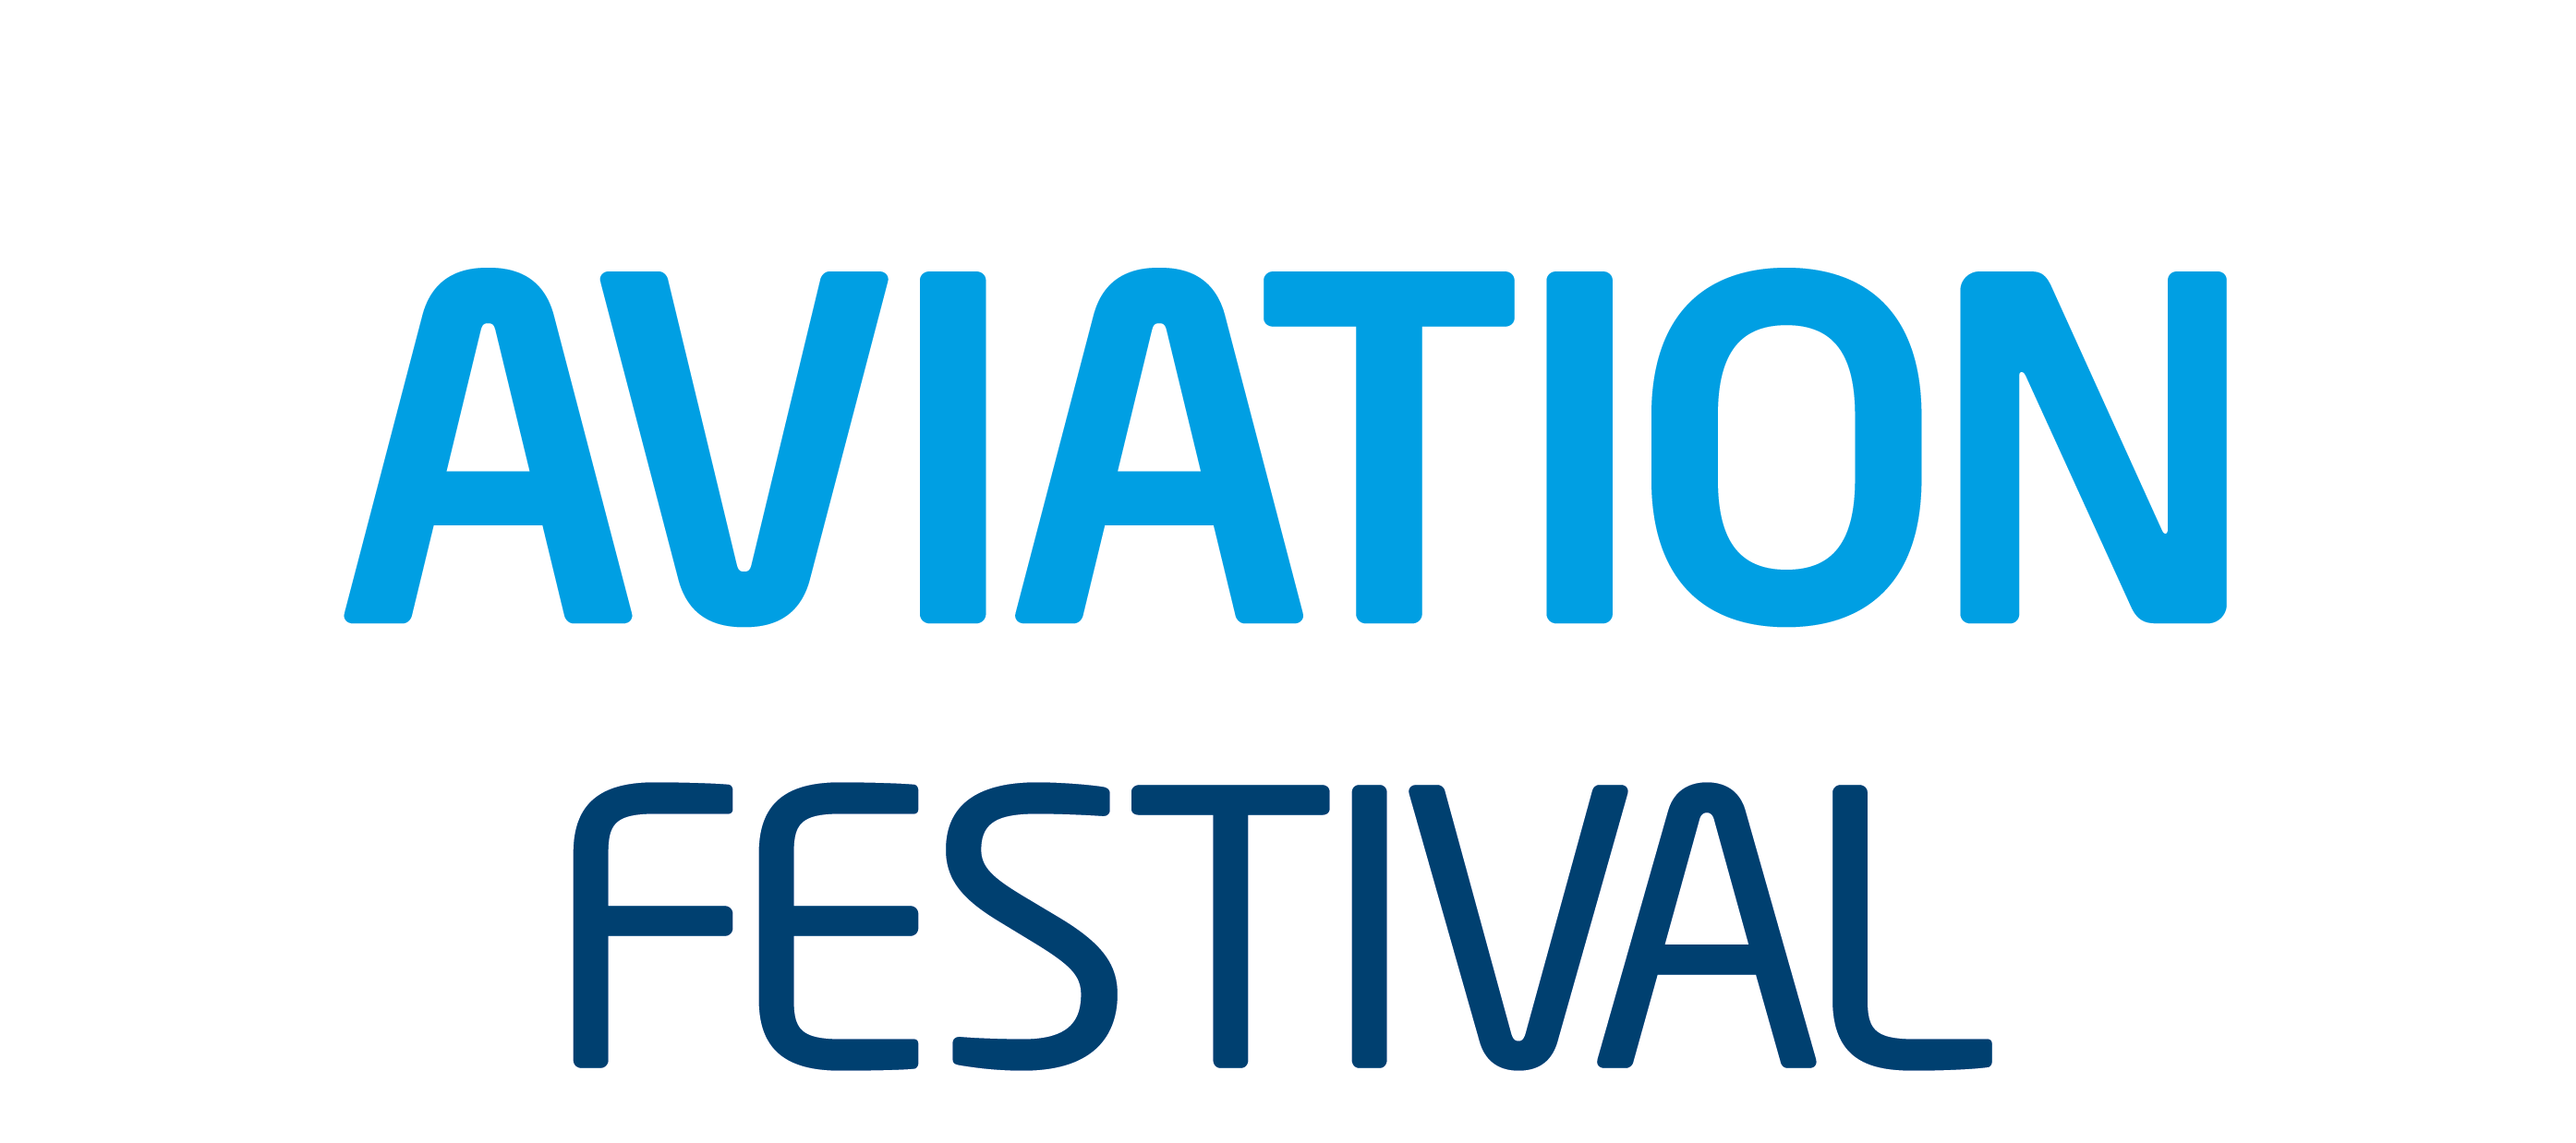 World Aviation Festival 2019